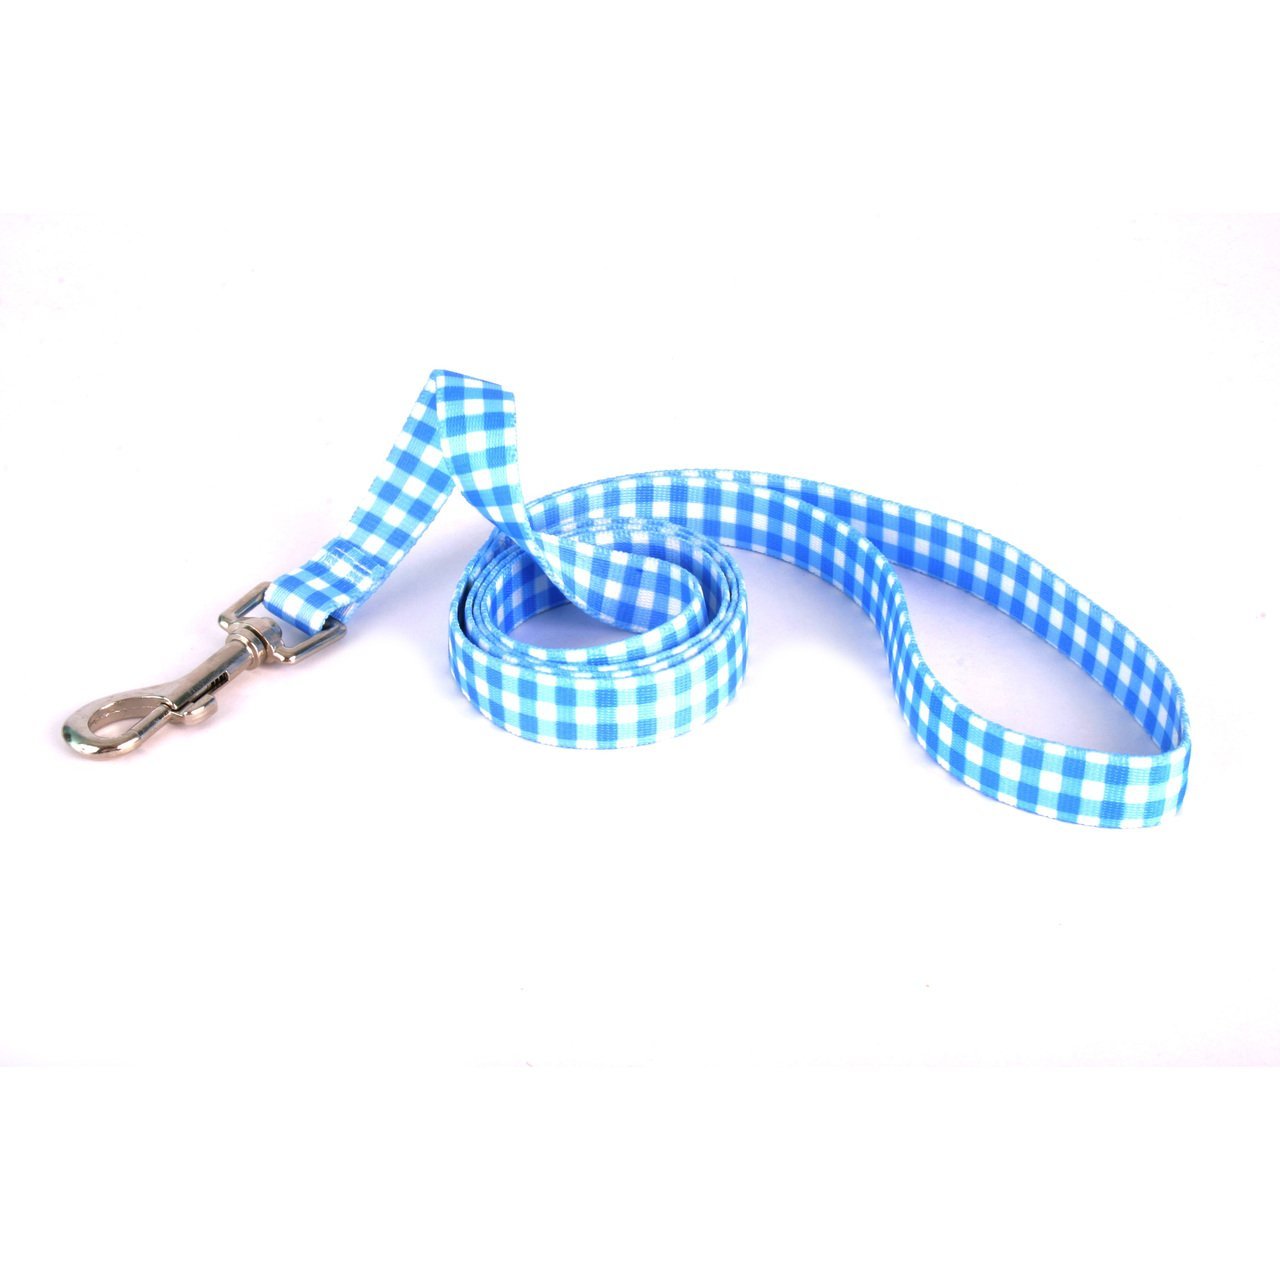 Yellow Dog Design Gingham Blue Dog Leash 3/4'' Wide and 5' (60'') Long, Small/Medium by Yellow Dog Design